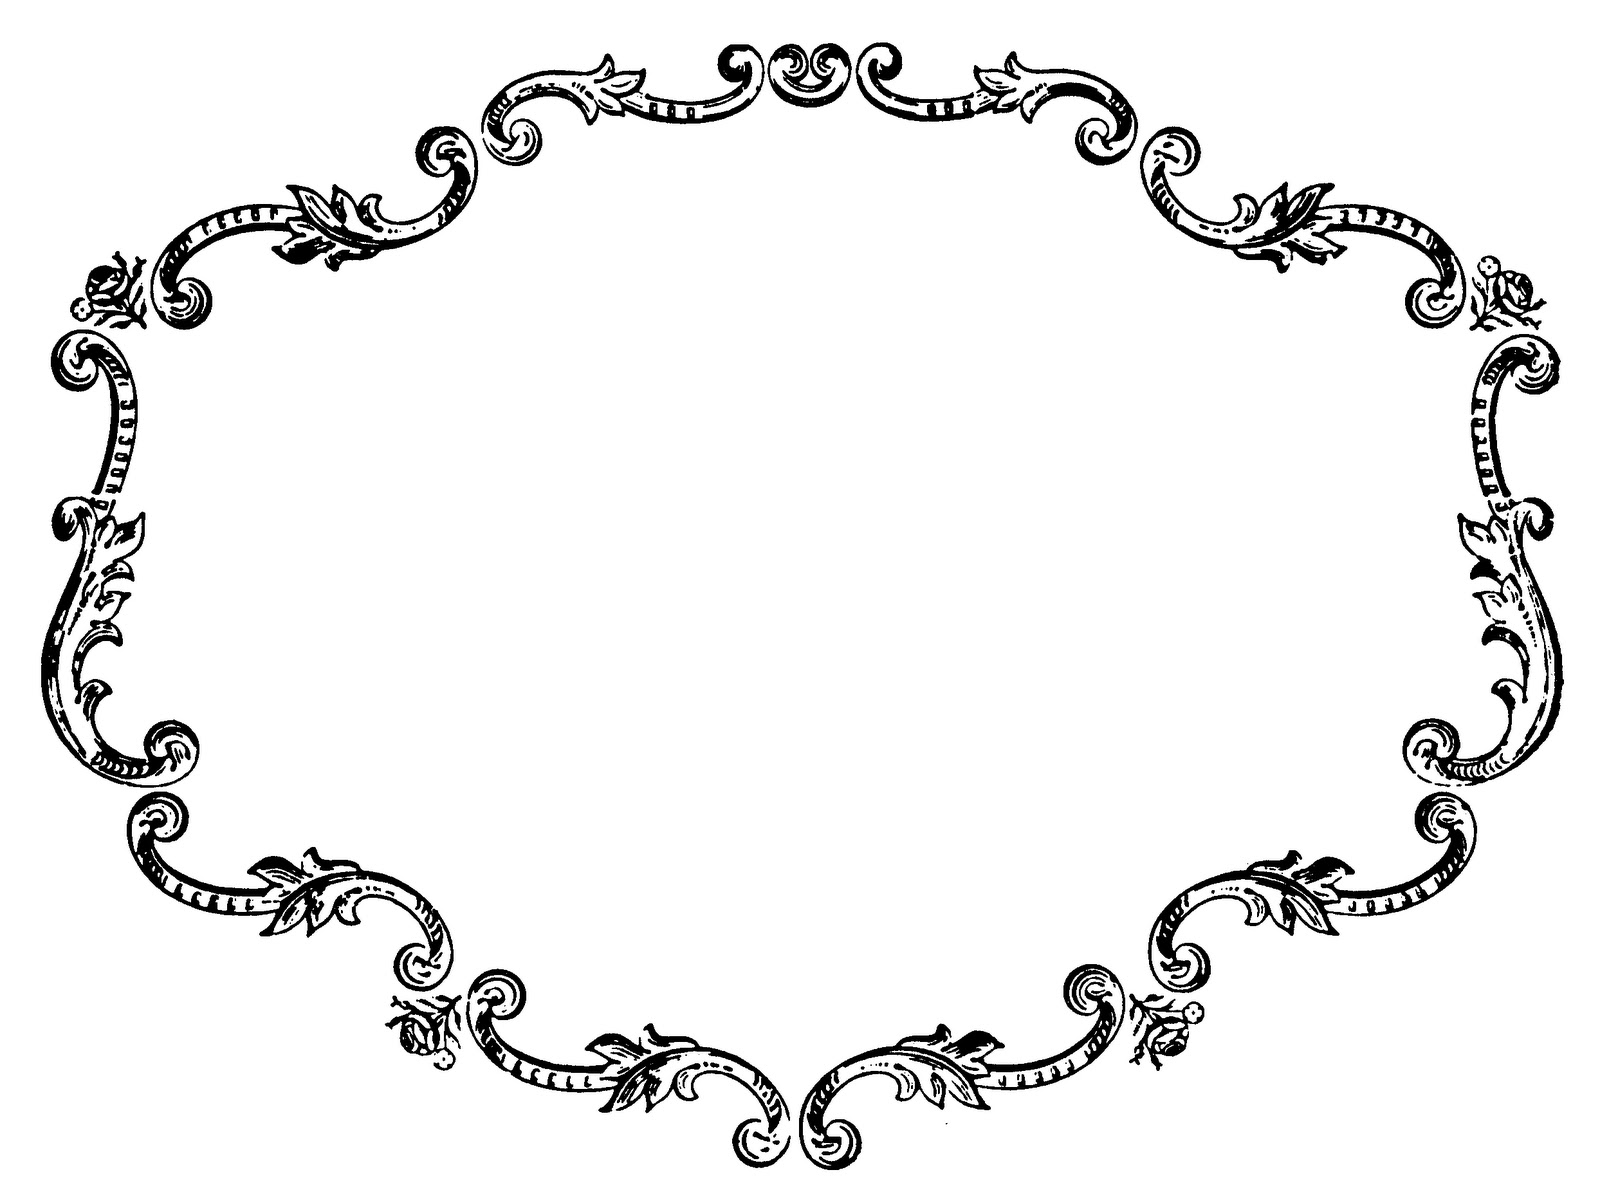 image Border free images . Clipart borders vintage